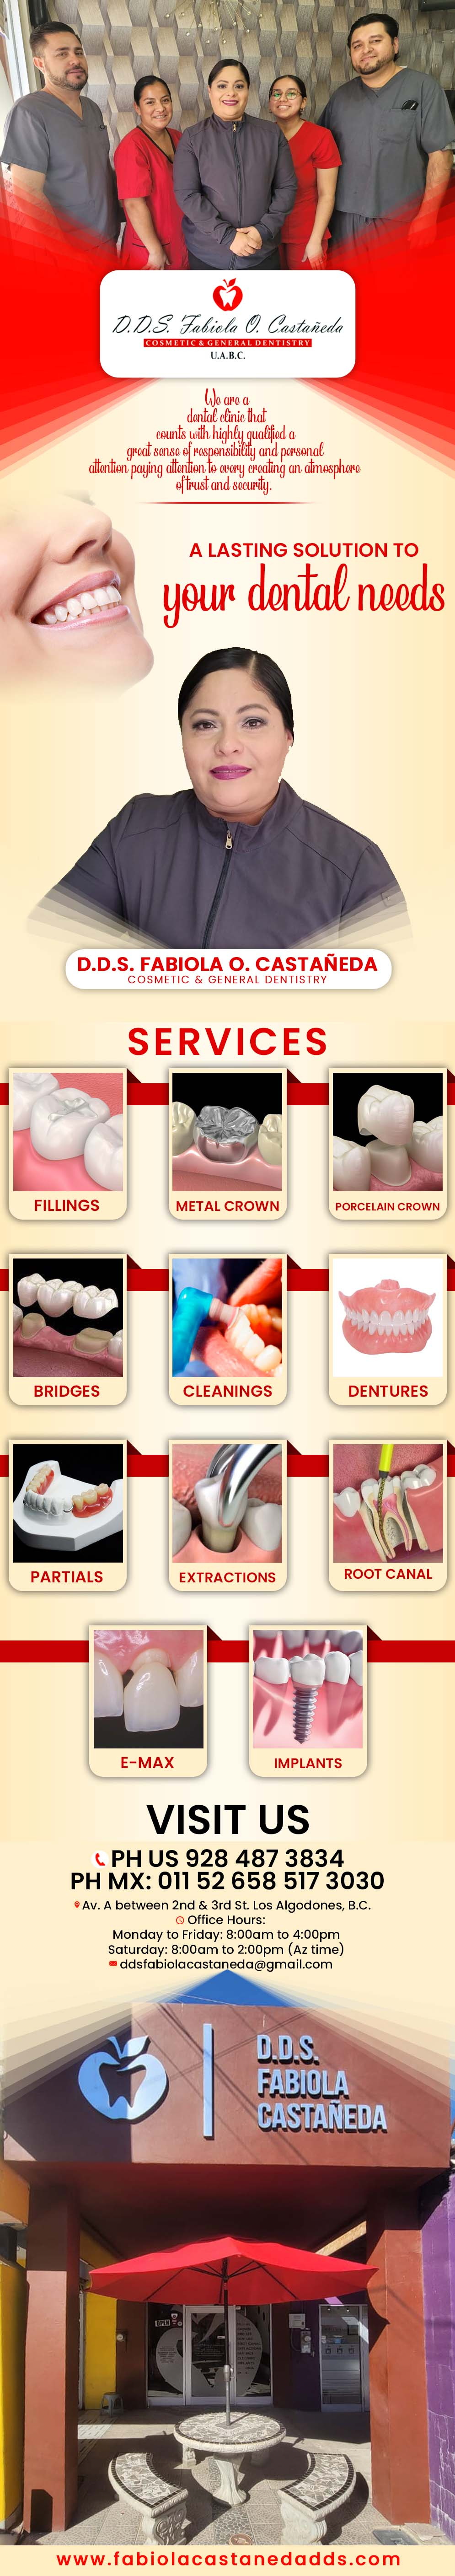 DDS. Fabiola O. Castañeda Cosmetic & General Dentistry in Algodones  in Algodones  We are a dental clinic that counts with highly qualified, a great sense of responsibility and personal attention paying attention to every detail creating an atmosphere of trust and security. Services: Fillings, Bridges, Porcelain Crown, Cleanings, Dentures, Partials, Extractions, Root Canal.